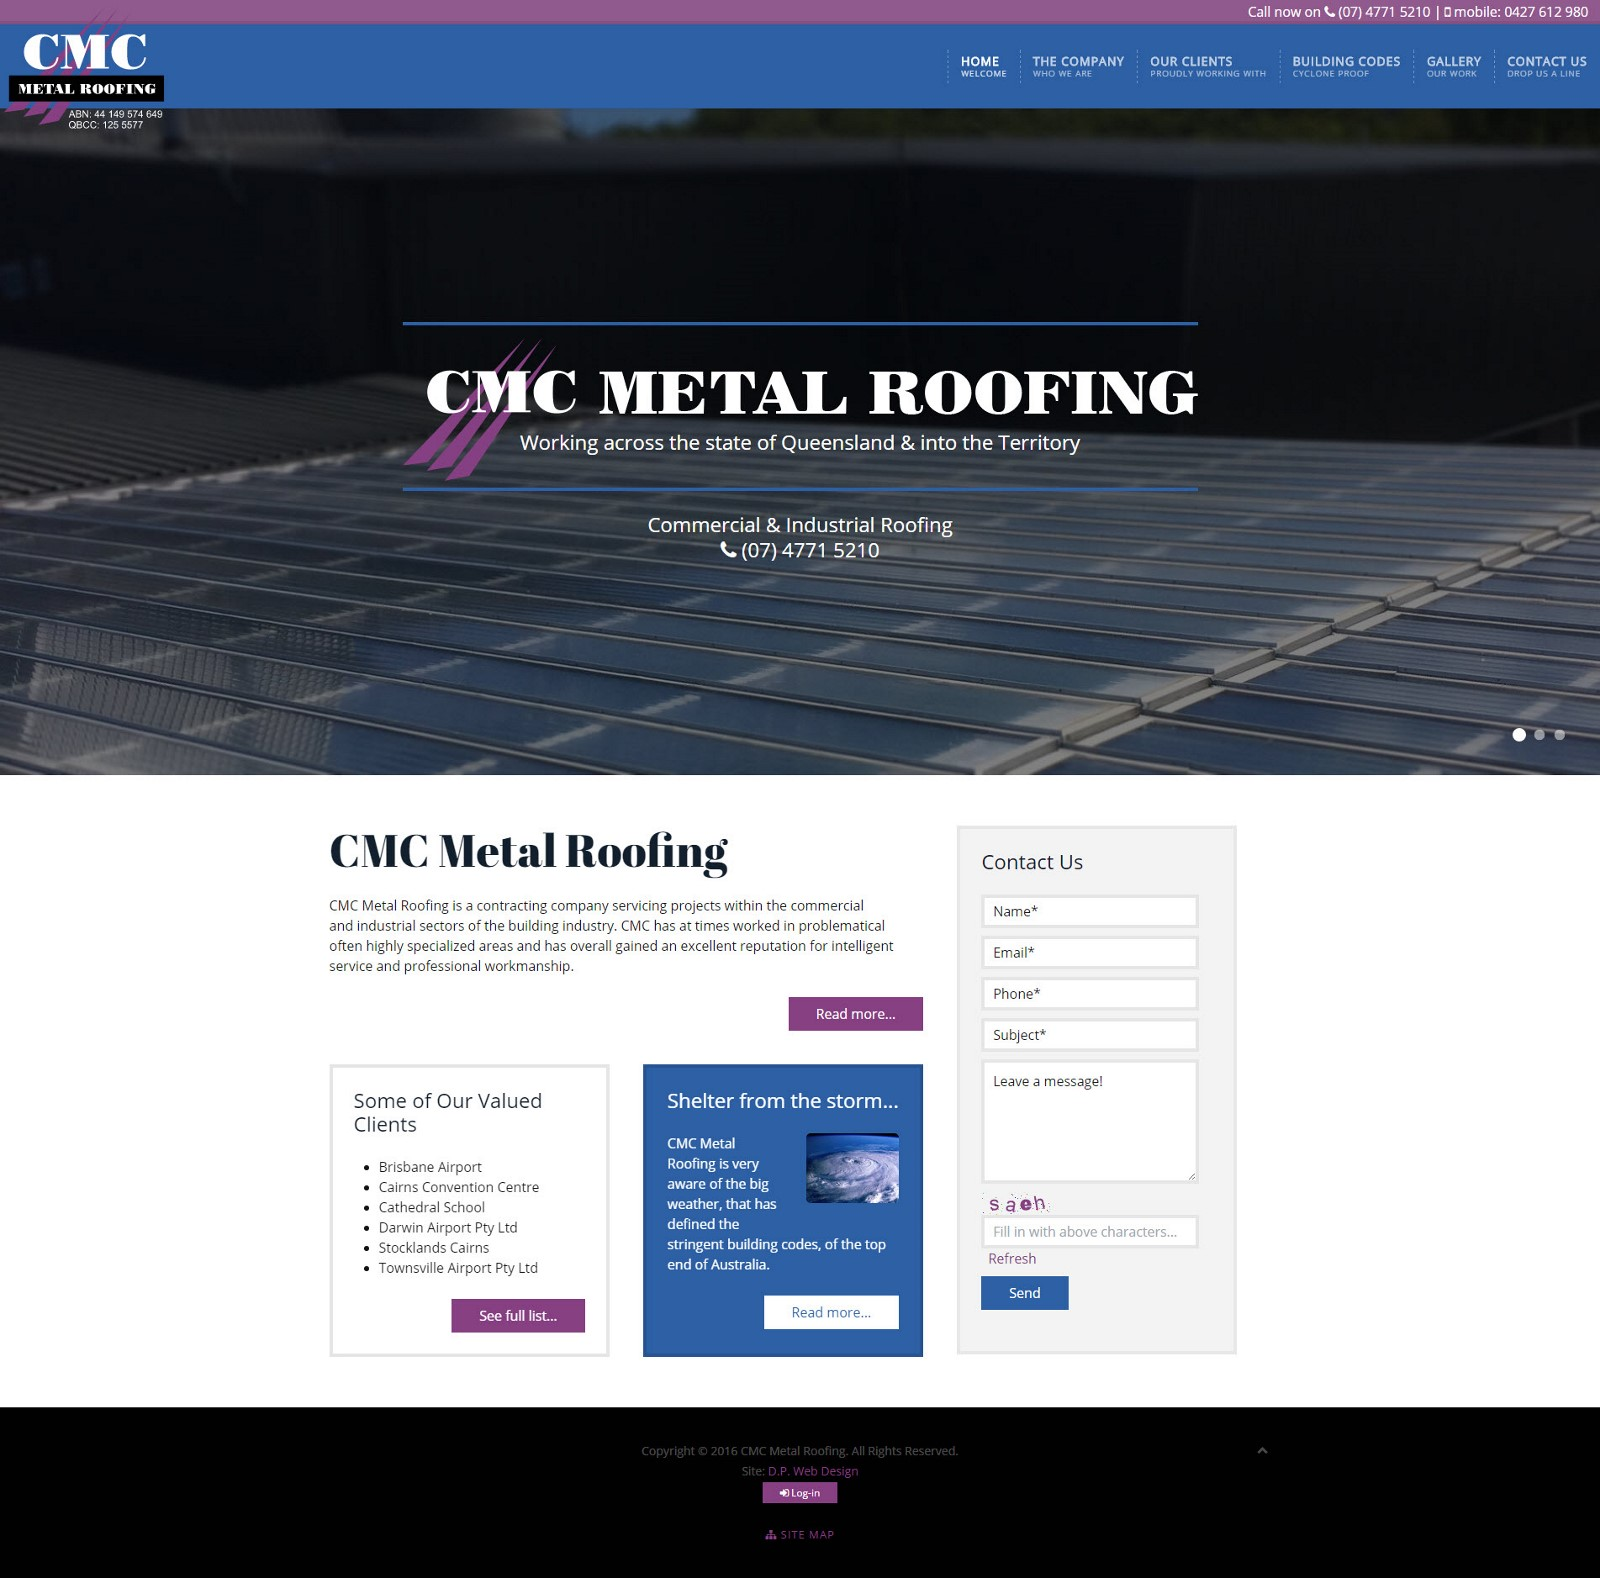 cmc01 CMC Metal Roofing